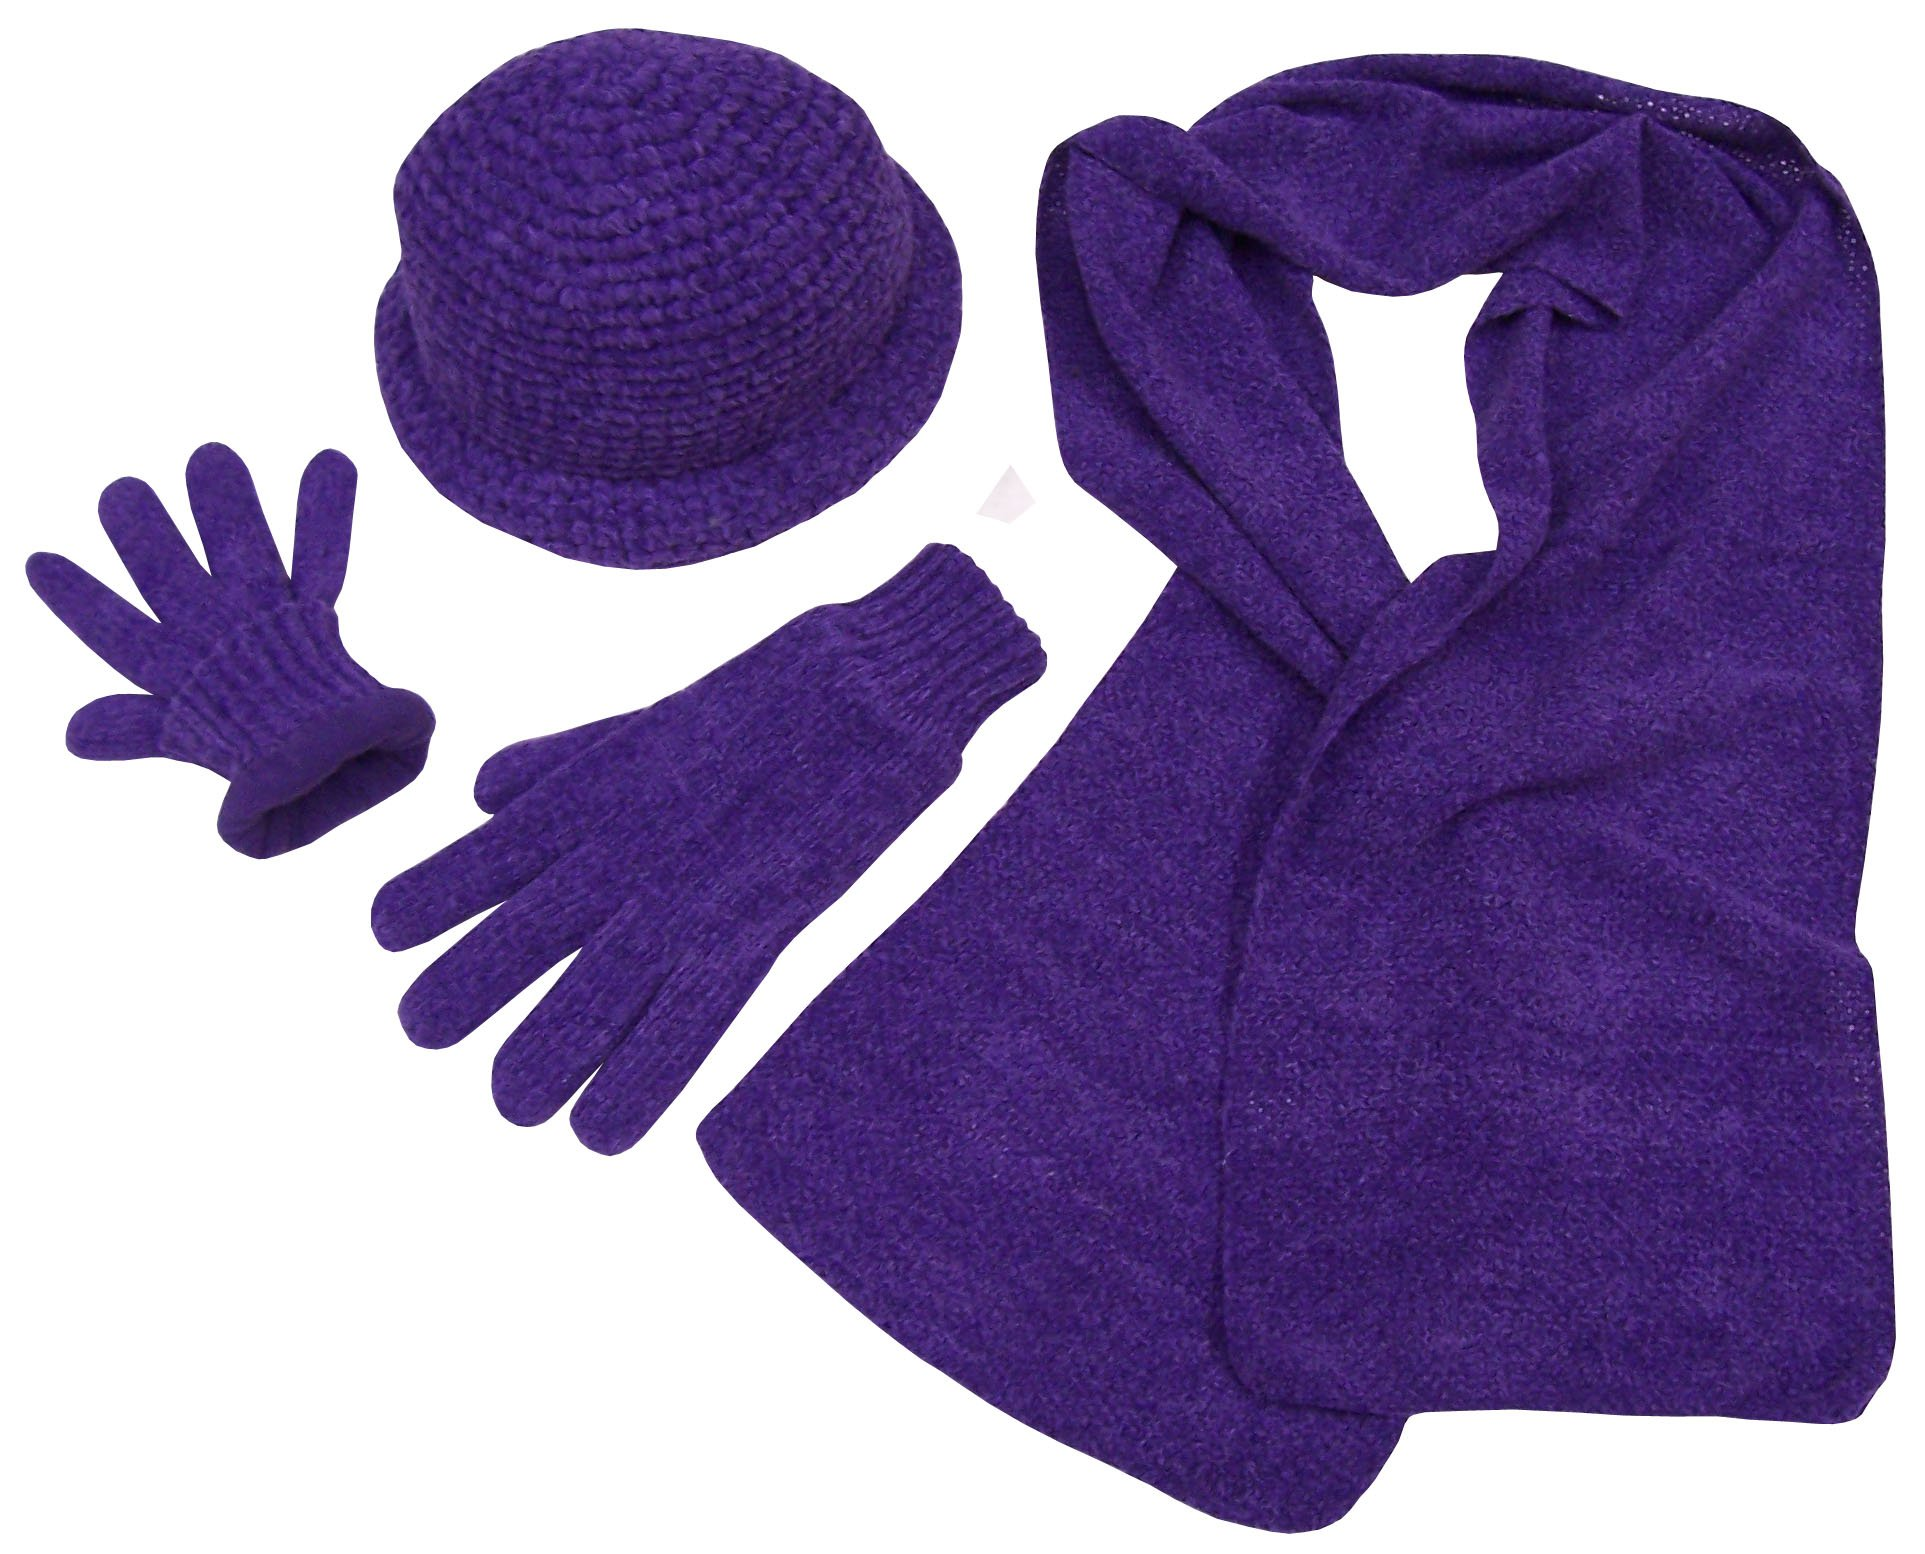 NICE CAPS Womens Crocheted Chenille Hat Gloves Scarf Winter Set Fleece Lined